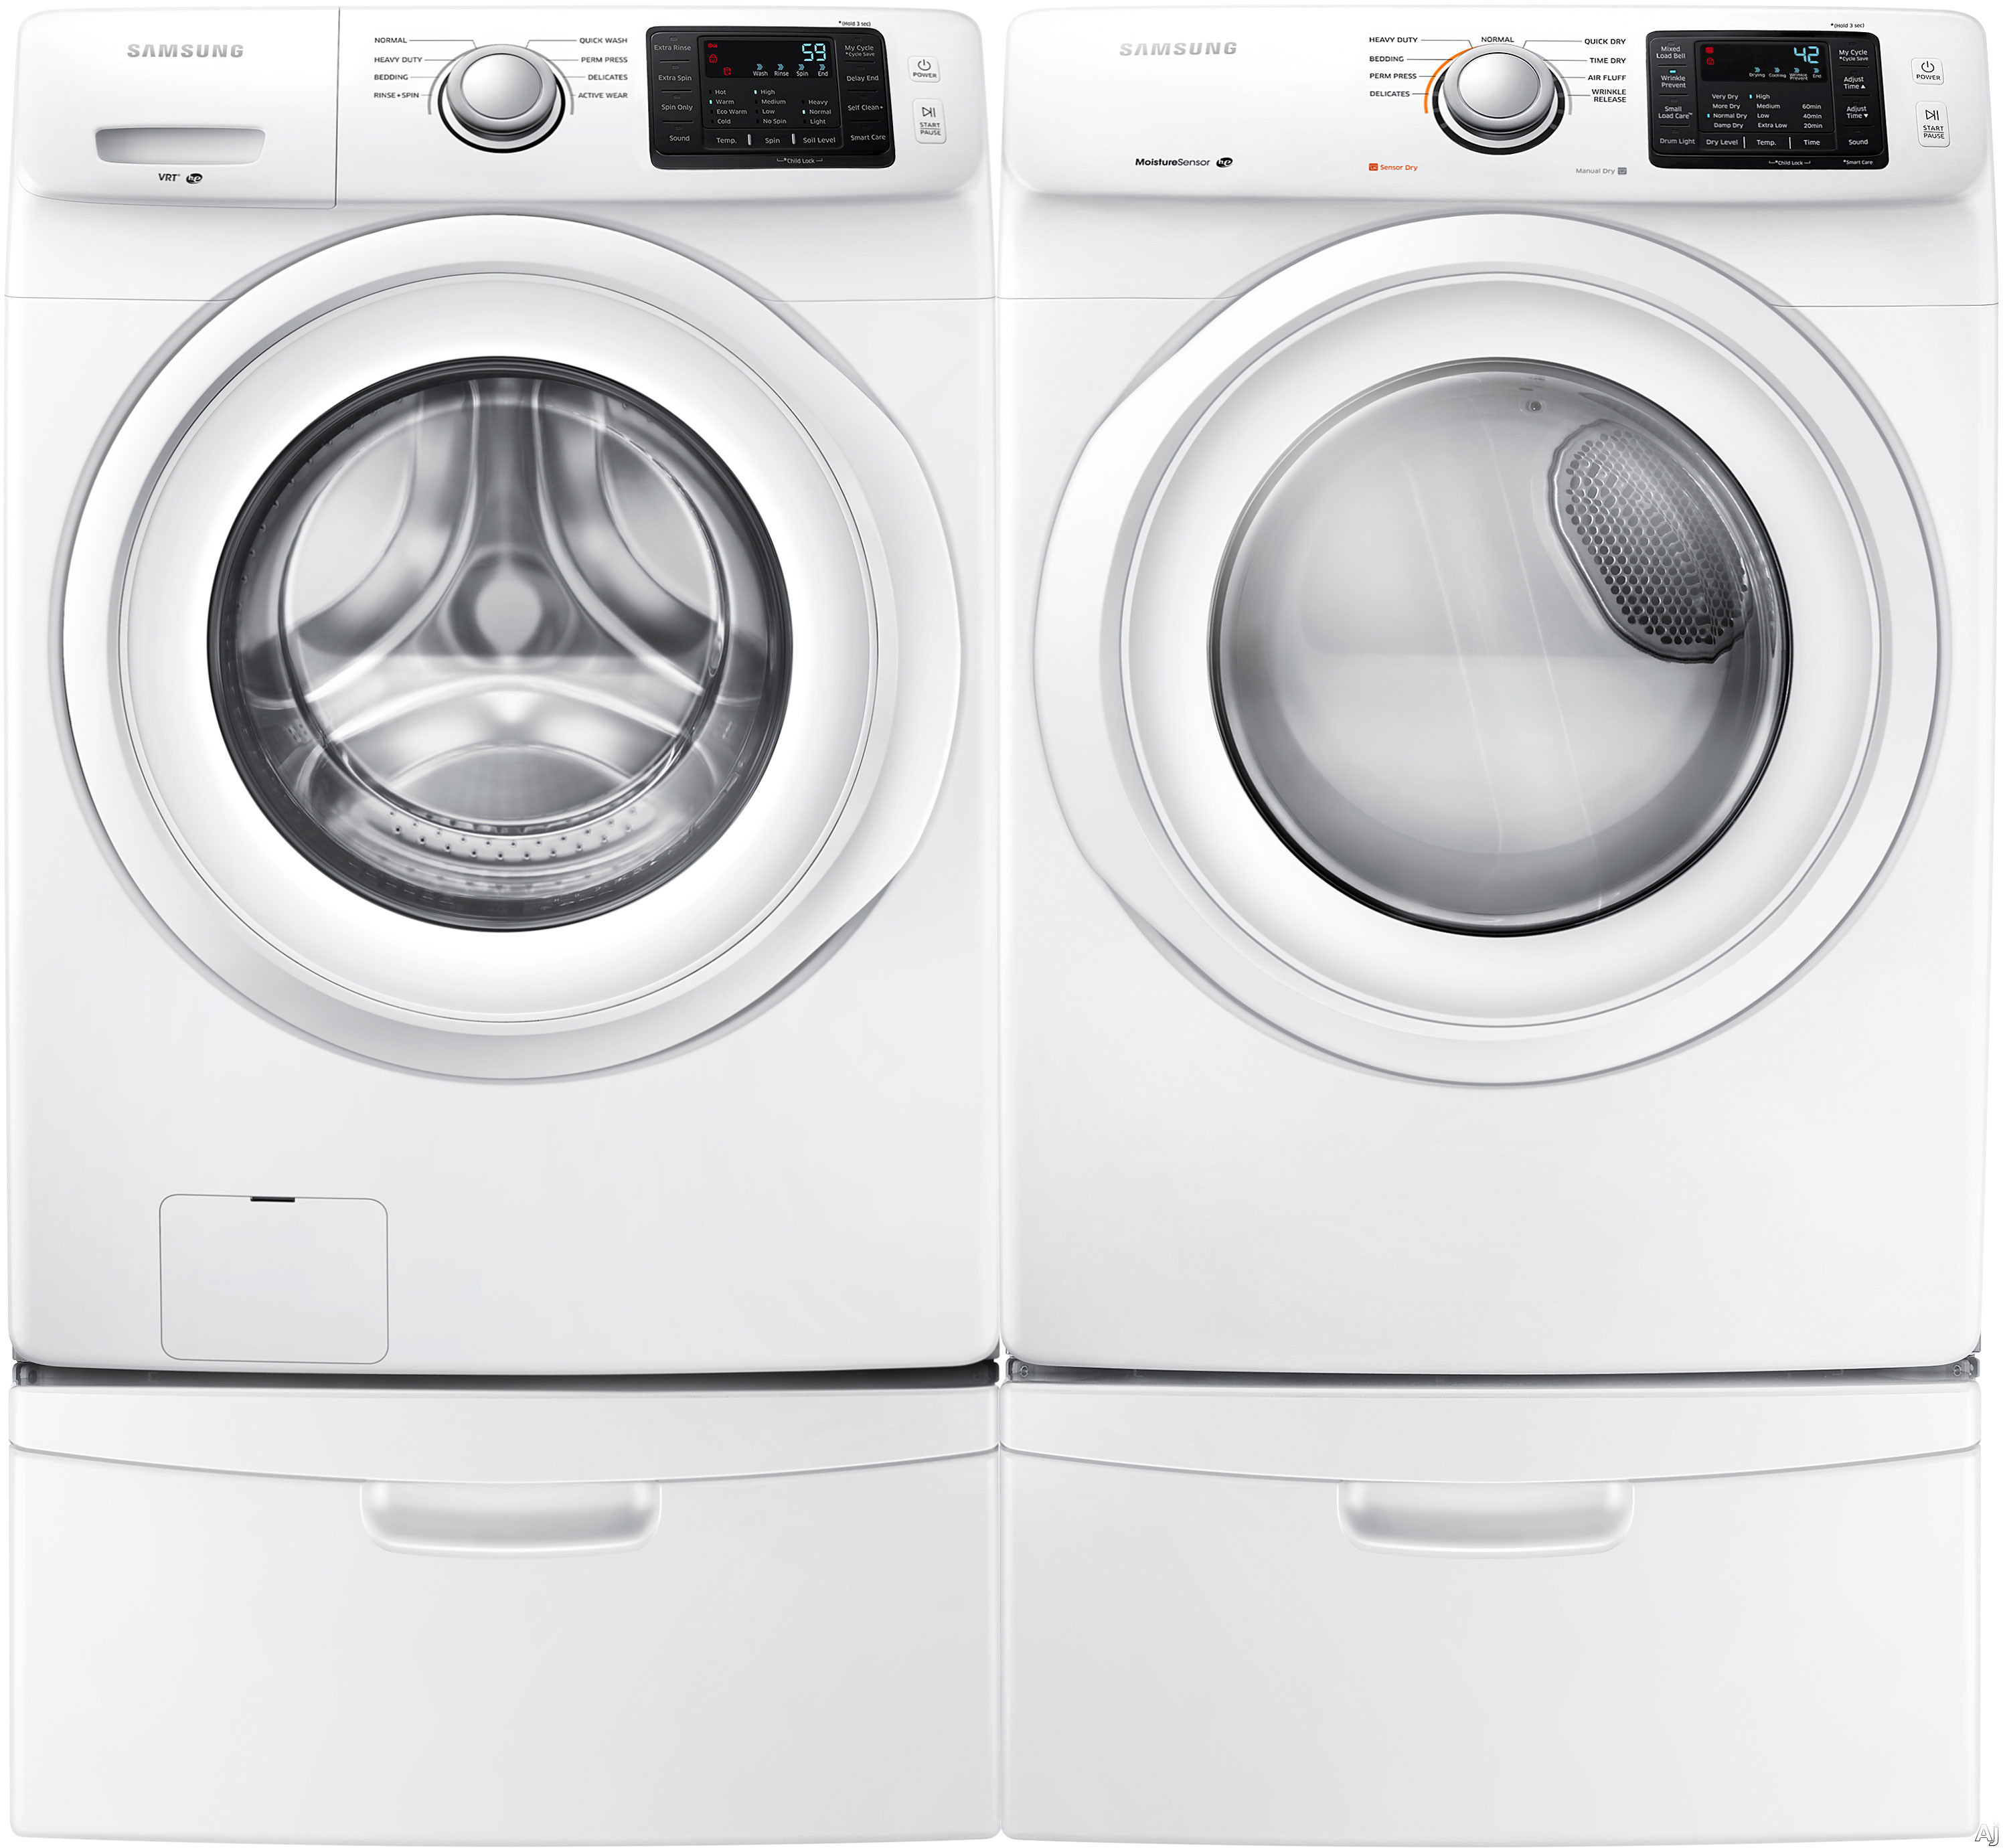 Washer And Dryer Dimensions Front Loading Samsung Sam5000fl Samsung 5000 Series Front Load Washer Dryer Pair